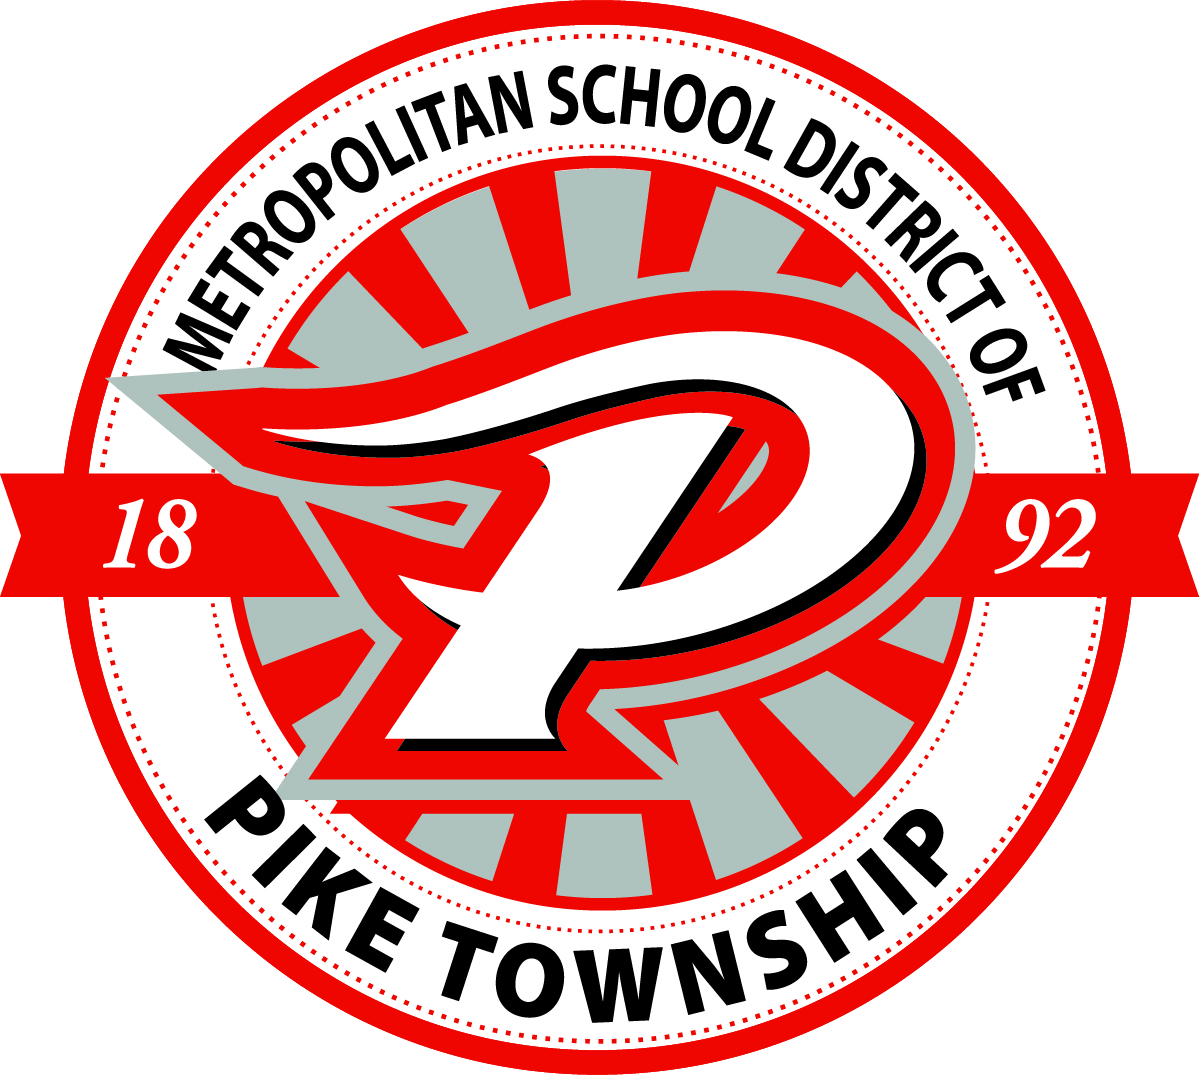 New Pike Township Seal